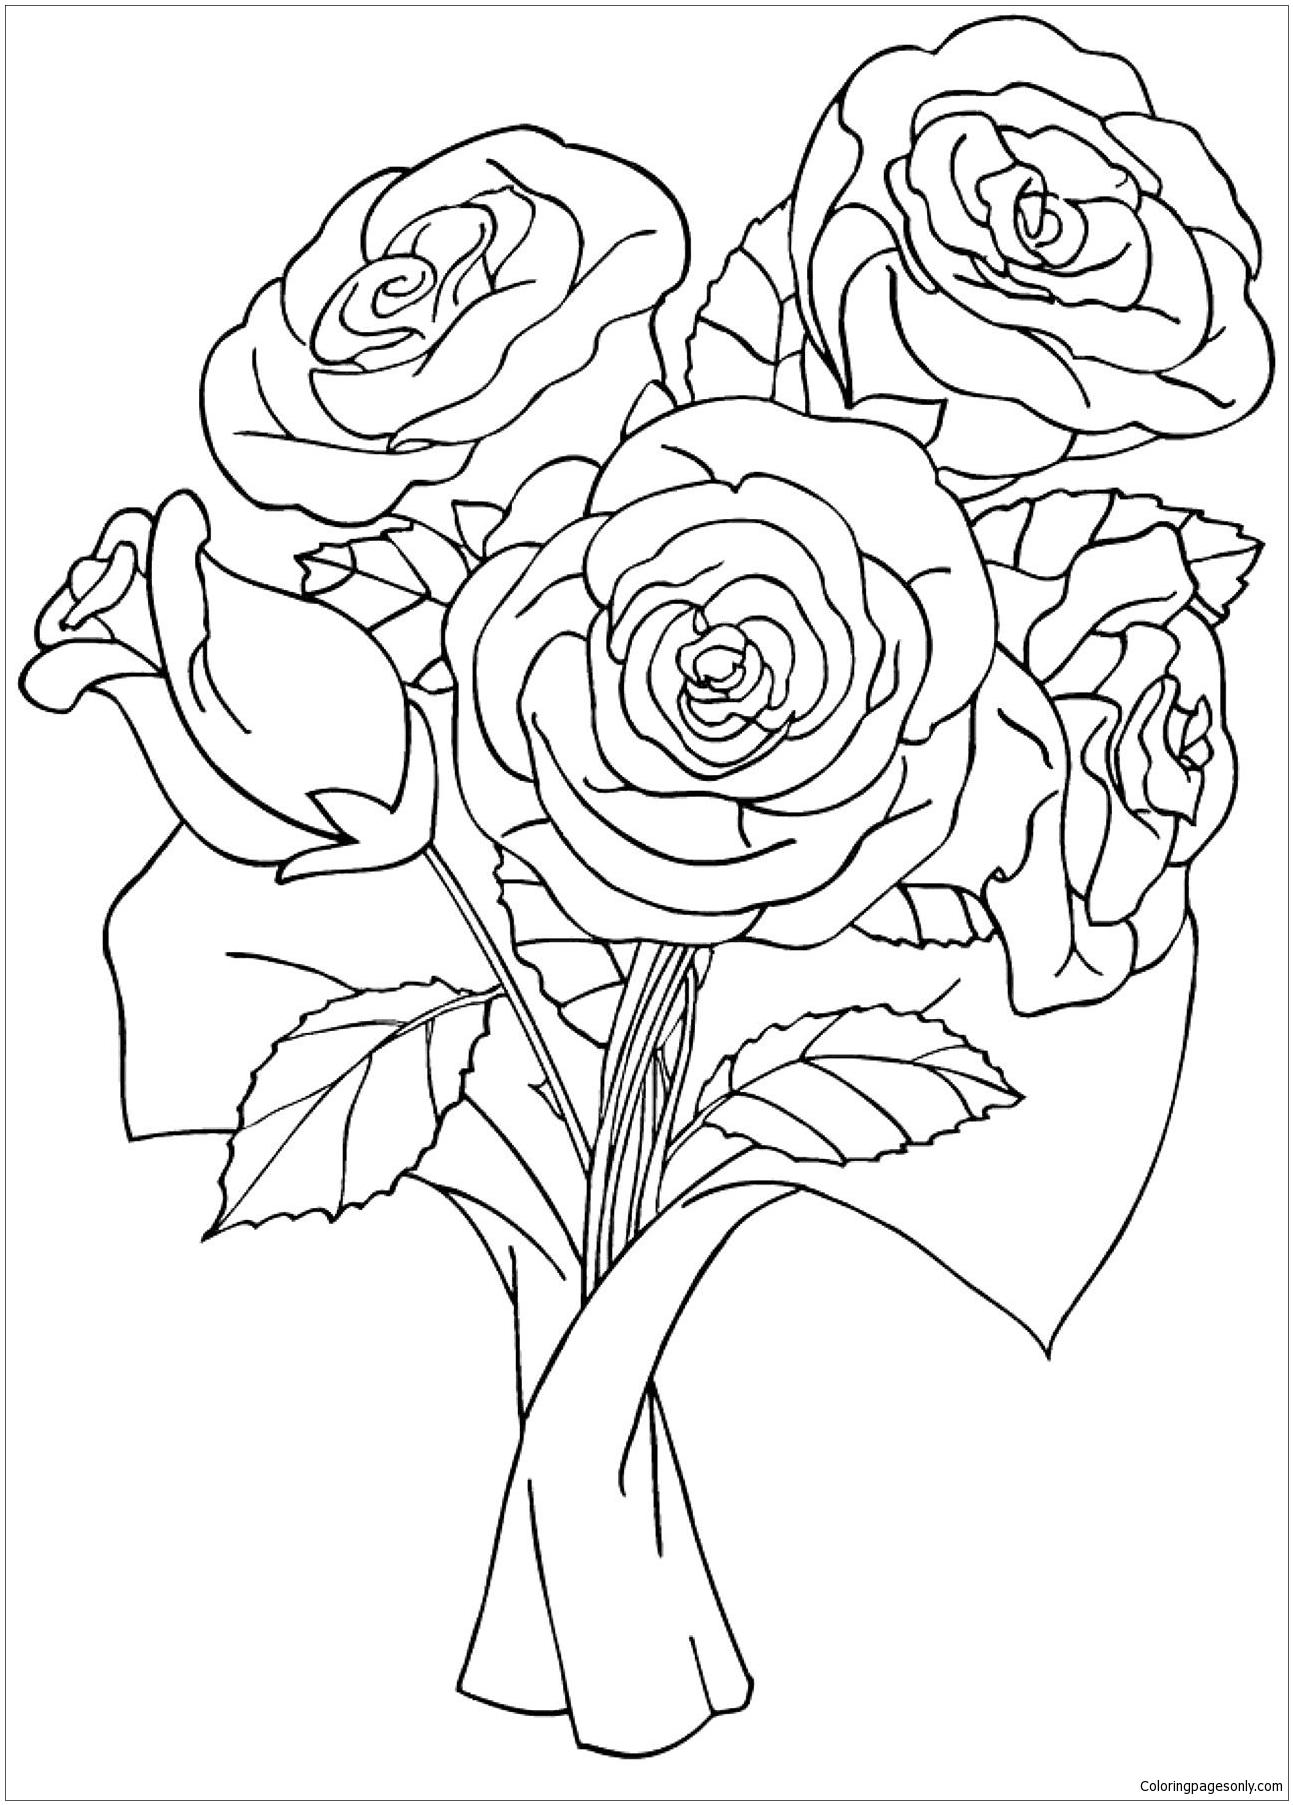 rose flower coloring pictures rose coloring pages realistic 101 coloring pictures rose coloring flower